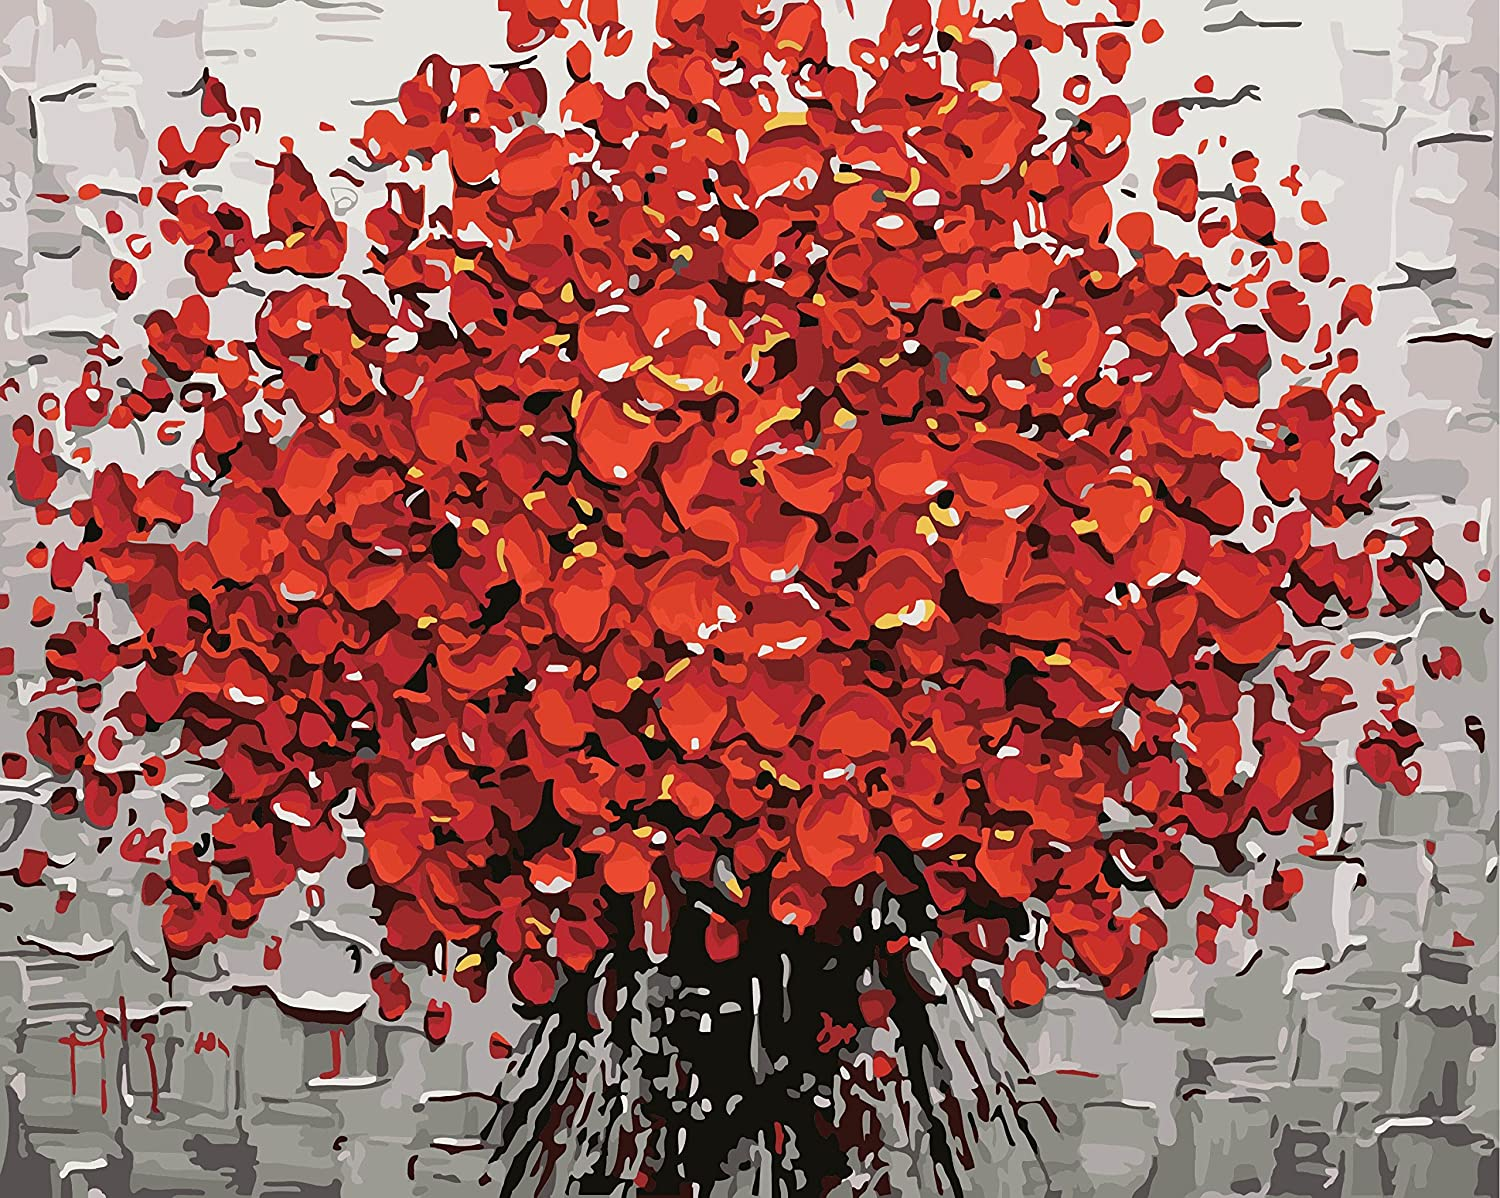 DIY Digital Canvas Oil Painting Gift for Adults Kids Paint by Number Kits Home Decorations- Red Flowers 16*20 inch NCFDBL